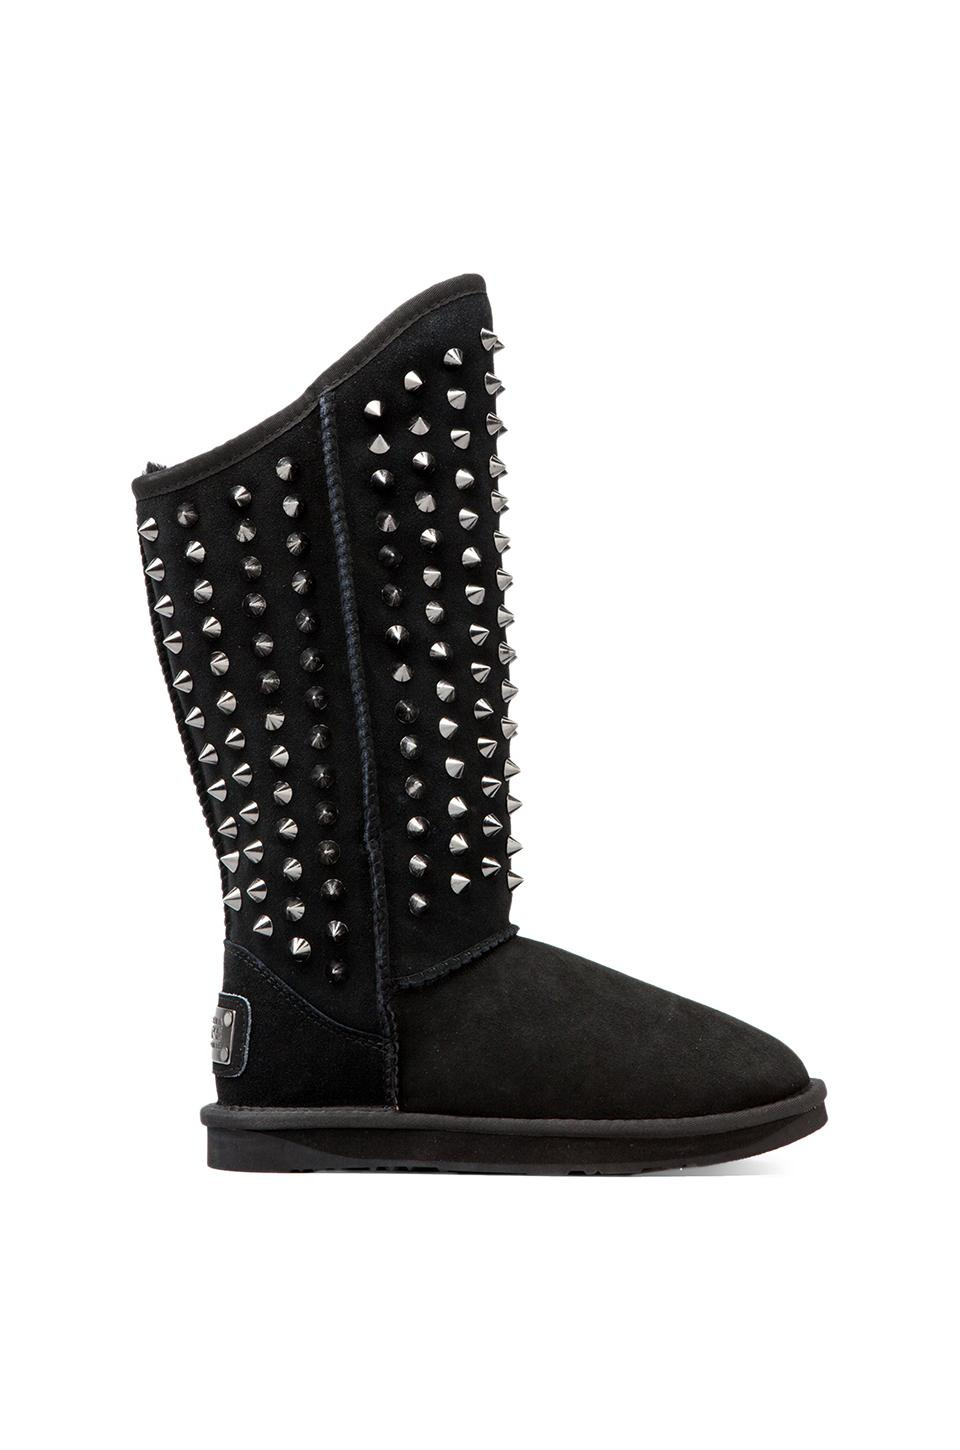 Australia Luxe Collective Pistol Tall Boot with Sheep Shearling in Black